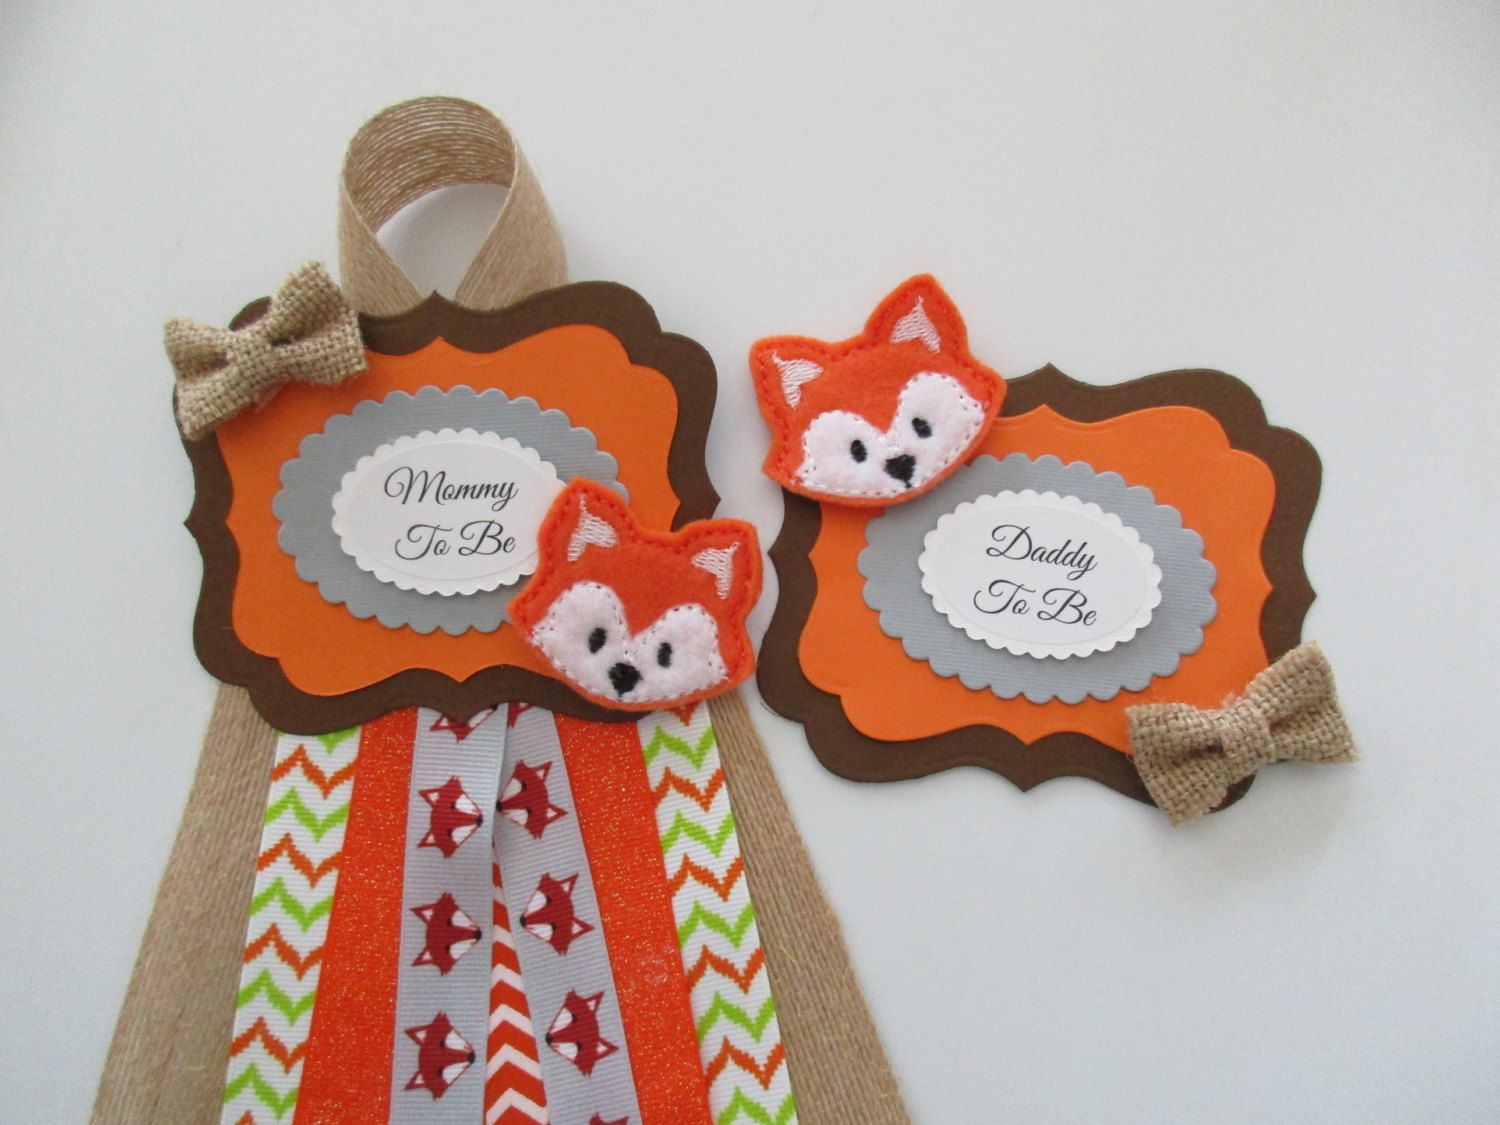 set fox mommy to be baby shower corsage daddy to be shower corsagebaby boy shower corsagebaby shower badge mommy to be corsage